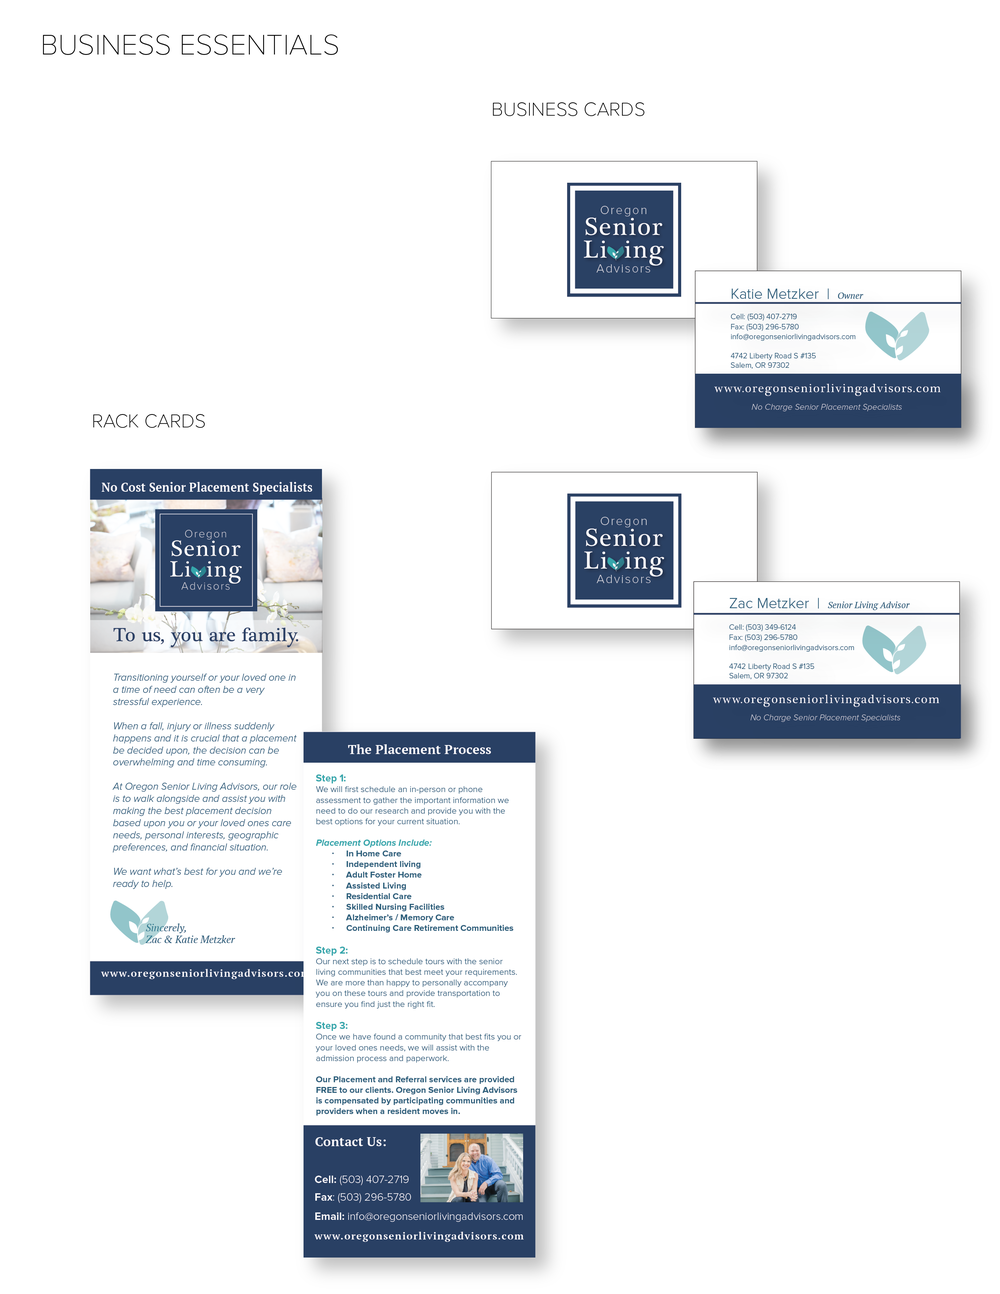 Oregon Senior Living Advisors - Business Cards designed by Brightly & Co